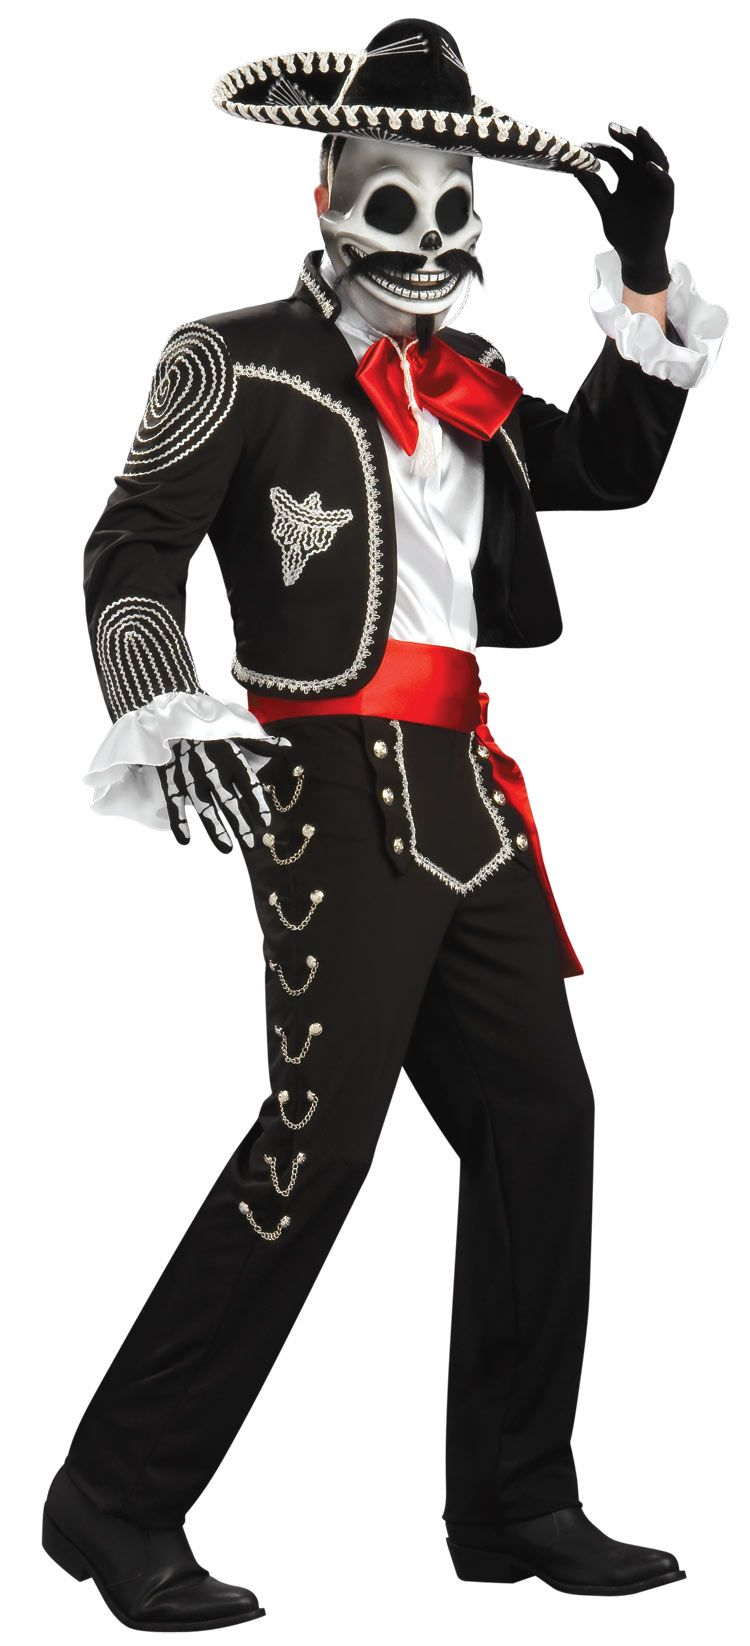 El Senor Adult Costume - Day of the Dead Costumes | Halloween ...